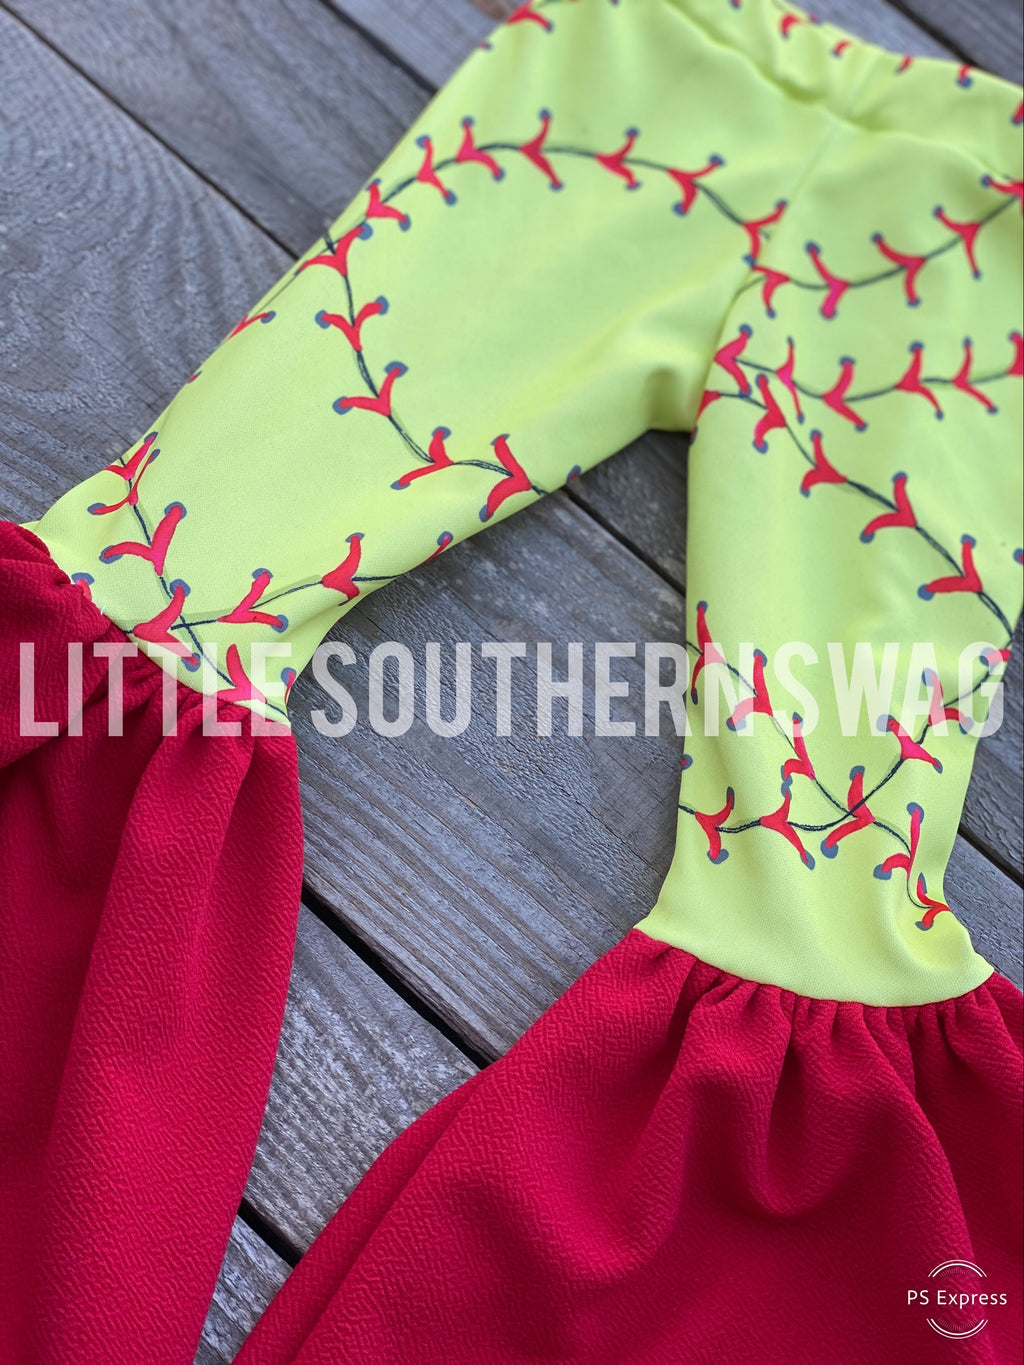 Softball Bells - Little Southern Swag